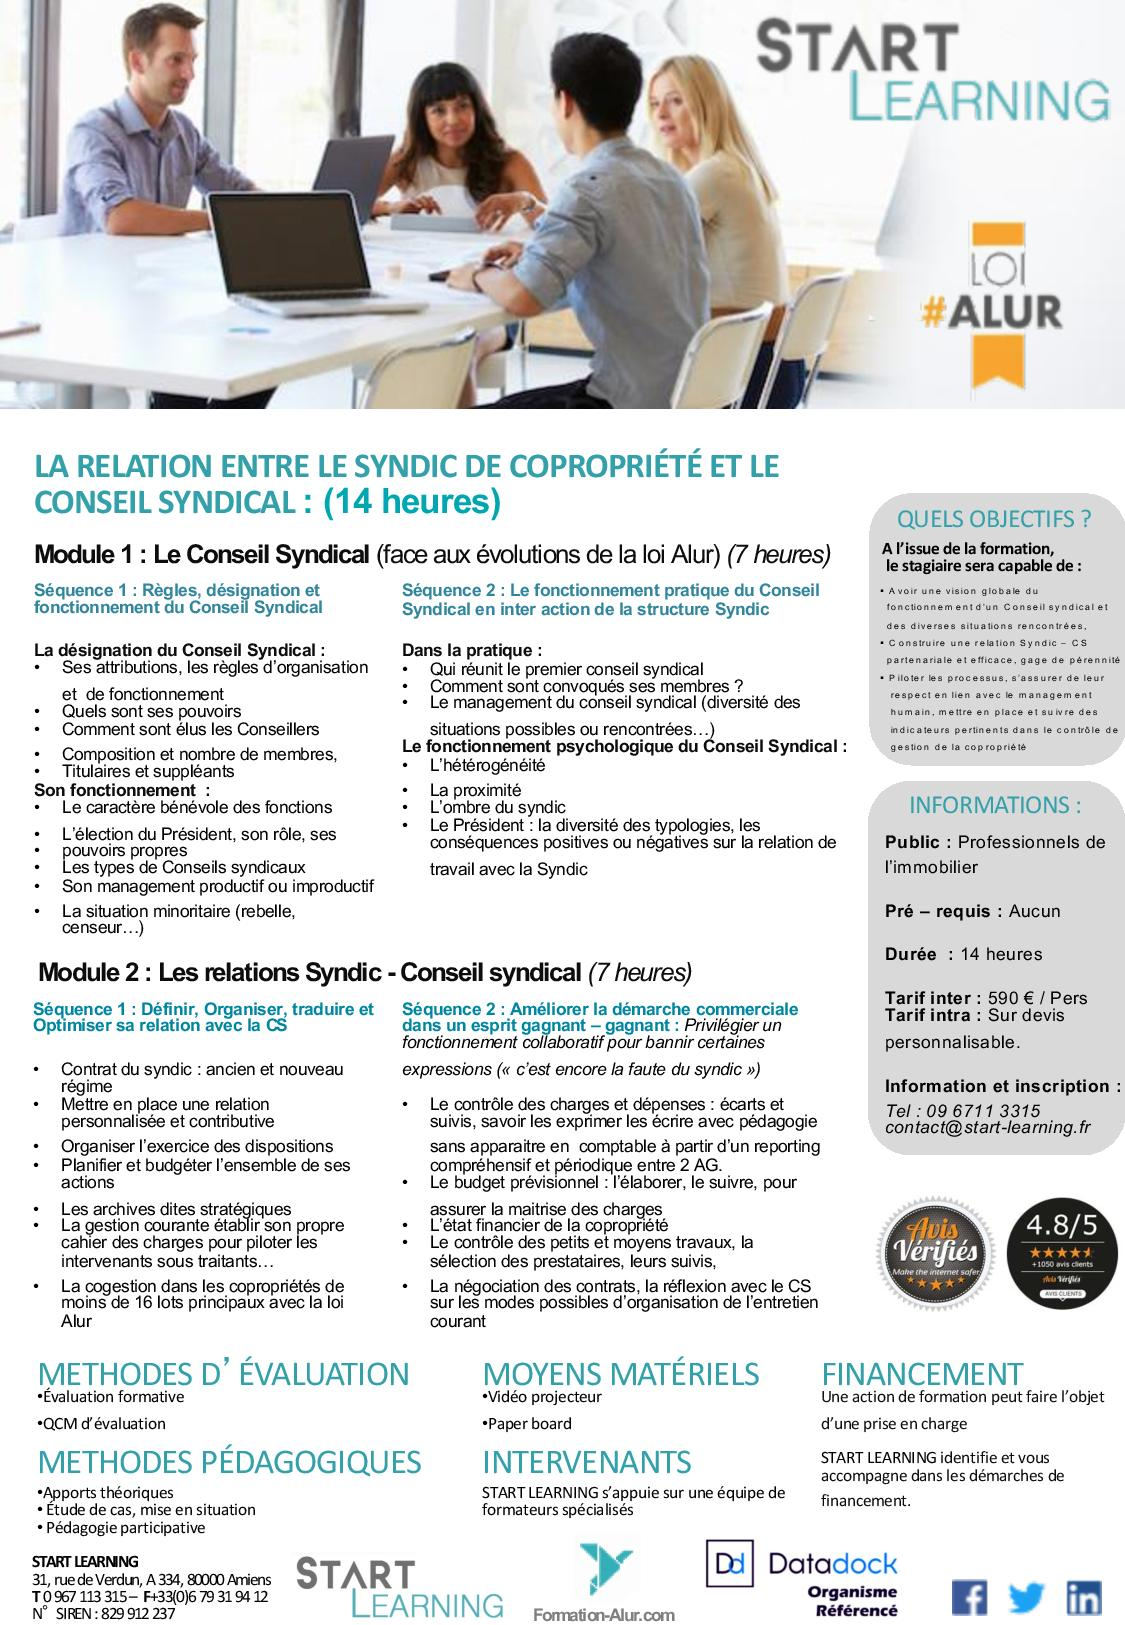 Programme Formation alur agent immobilier - Relation Syndic et Conseil Syndical (2J)